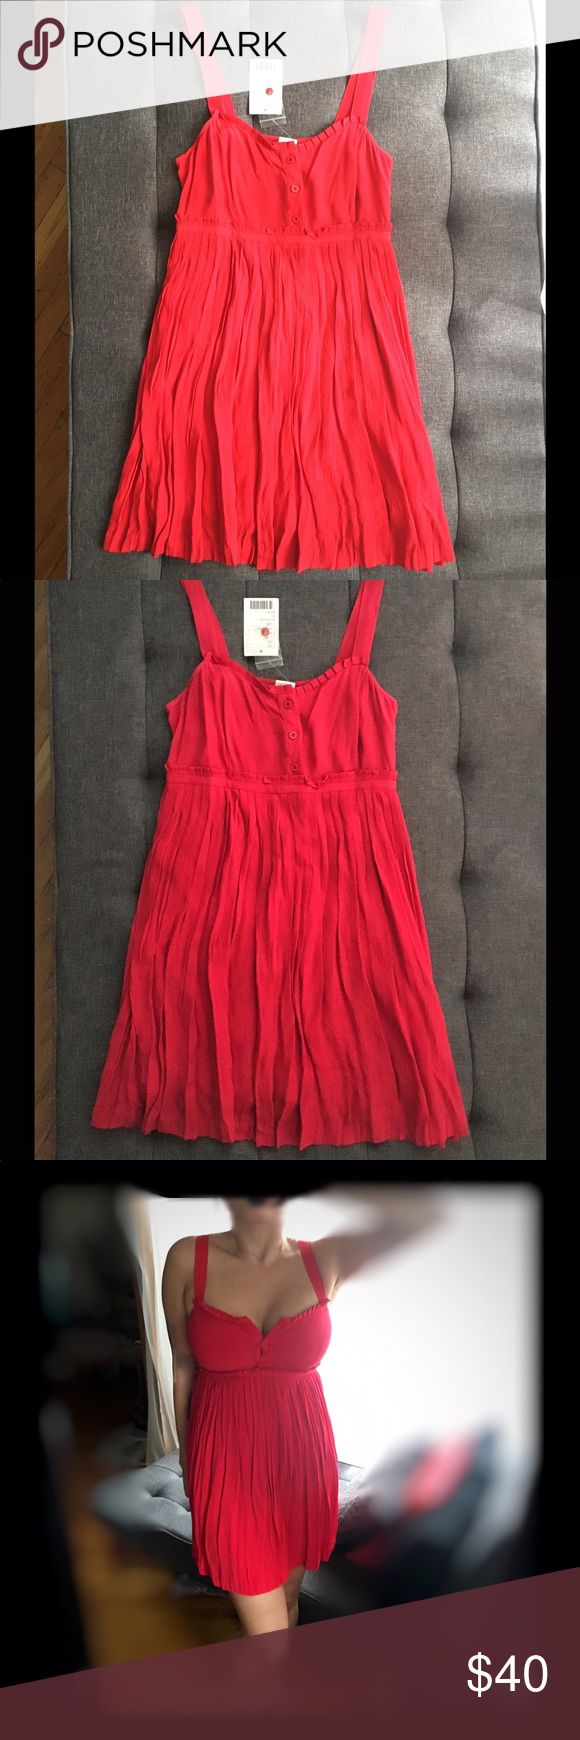 cute red dress NWT, brand new, never worn red dress. Rayon & viscose blend. Slightly above knee. Size M 🚫NO TRADES🚫📦FAST SHIPPER📦 Urban Outfitters Dresses Mini